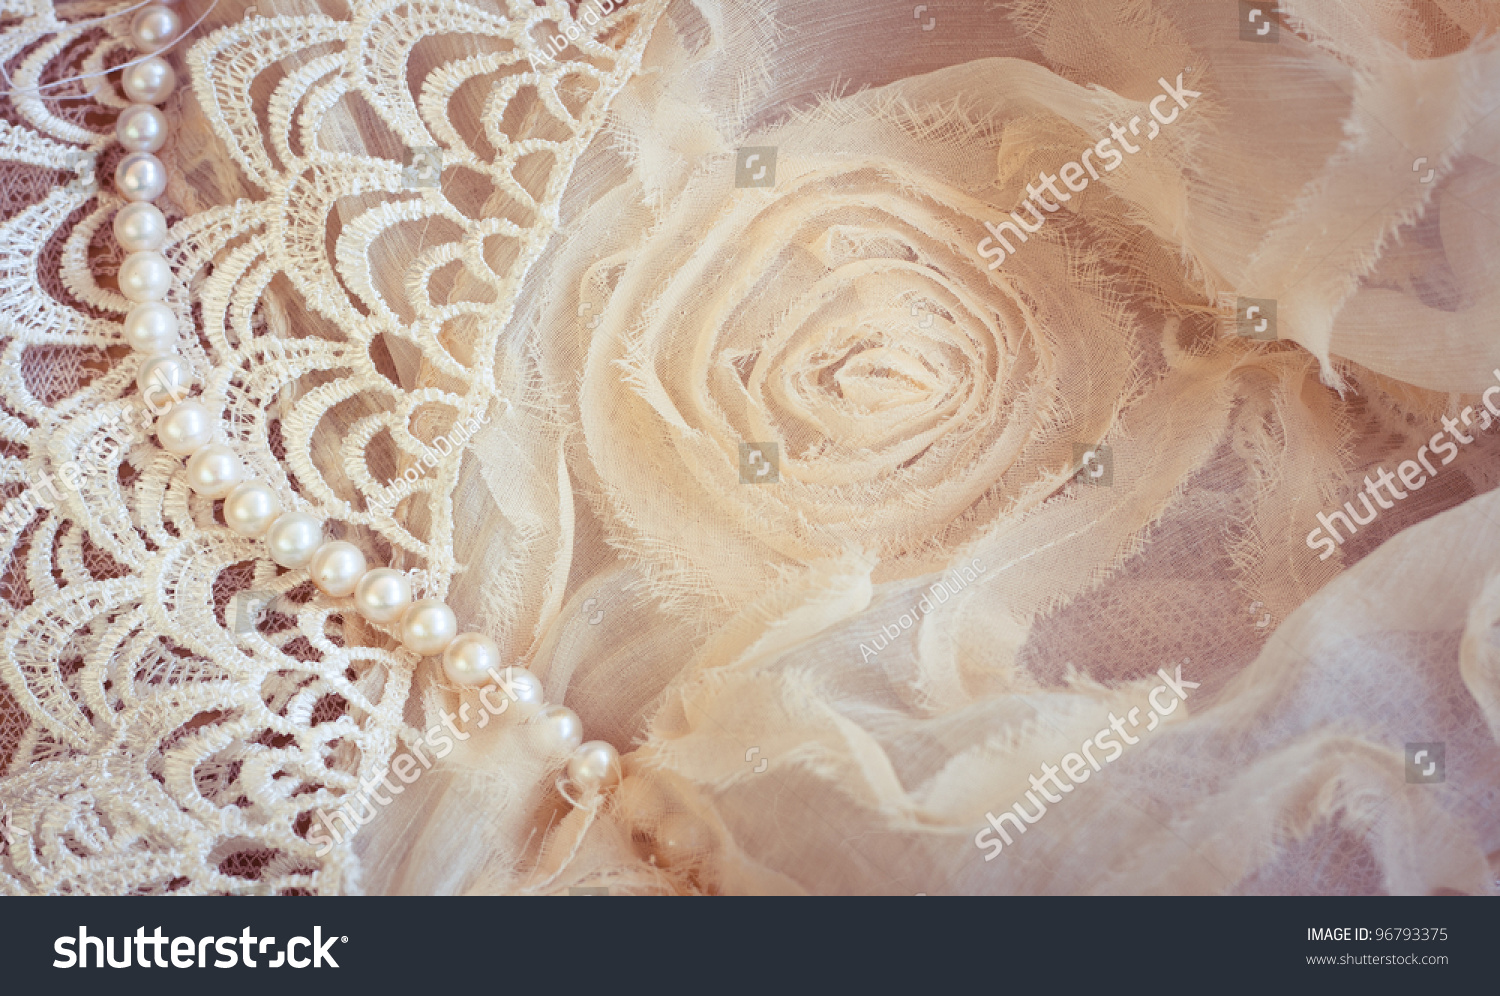 lace pearls pink wallpaper - photo #13